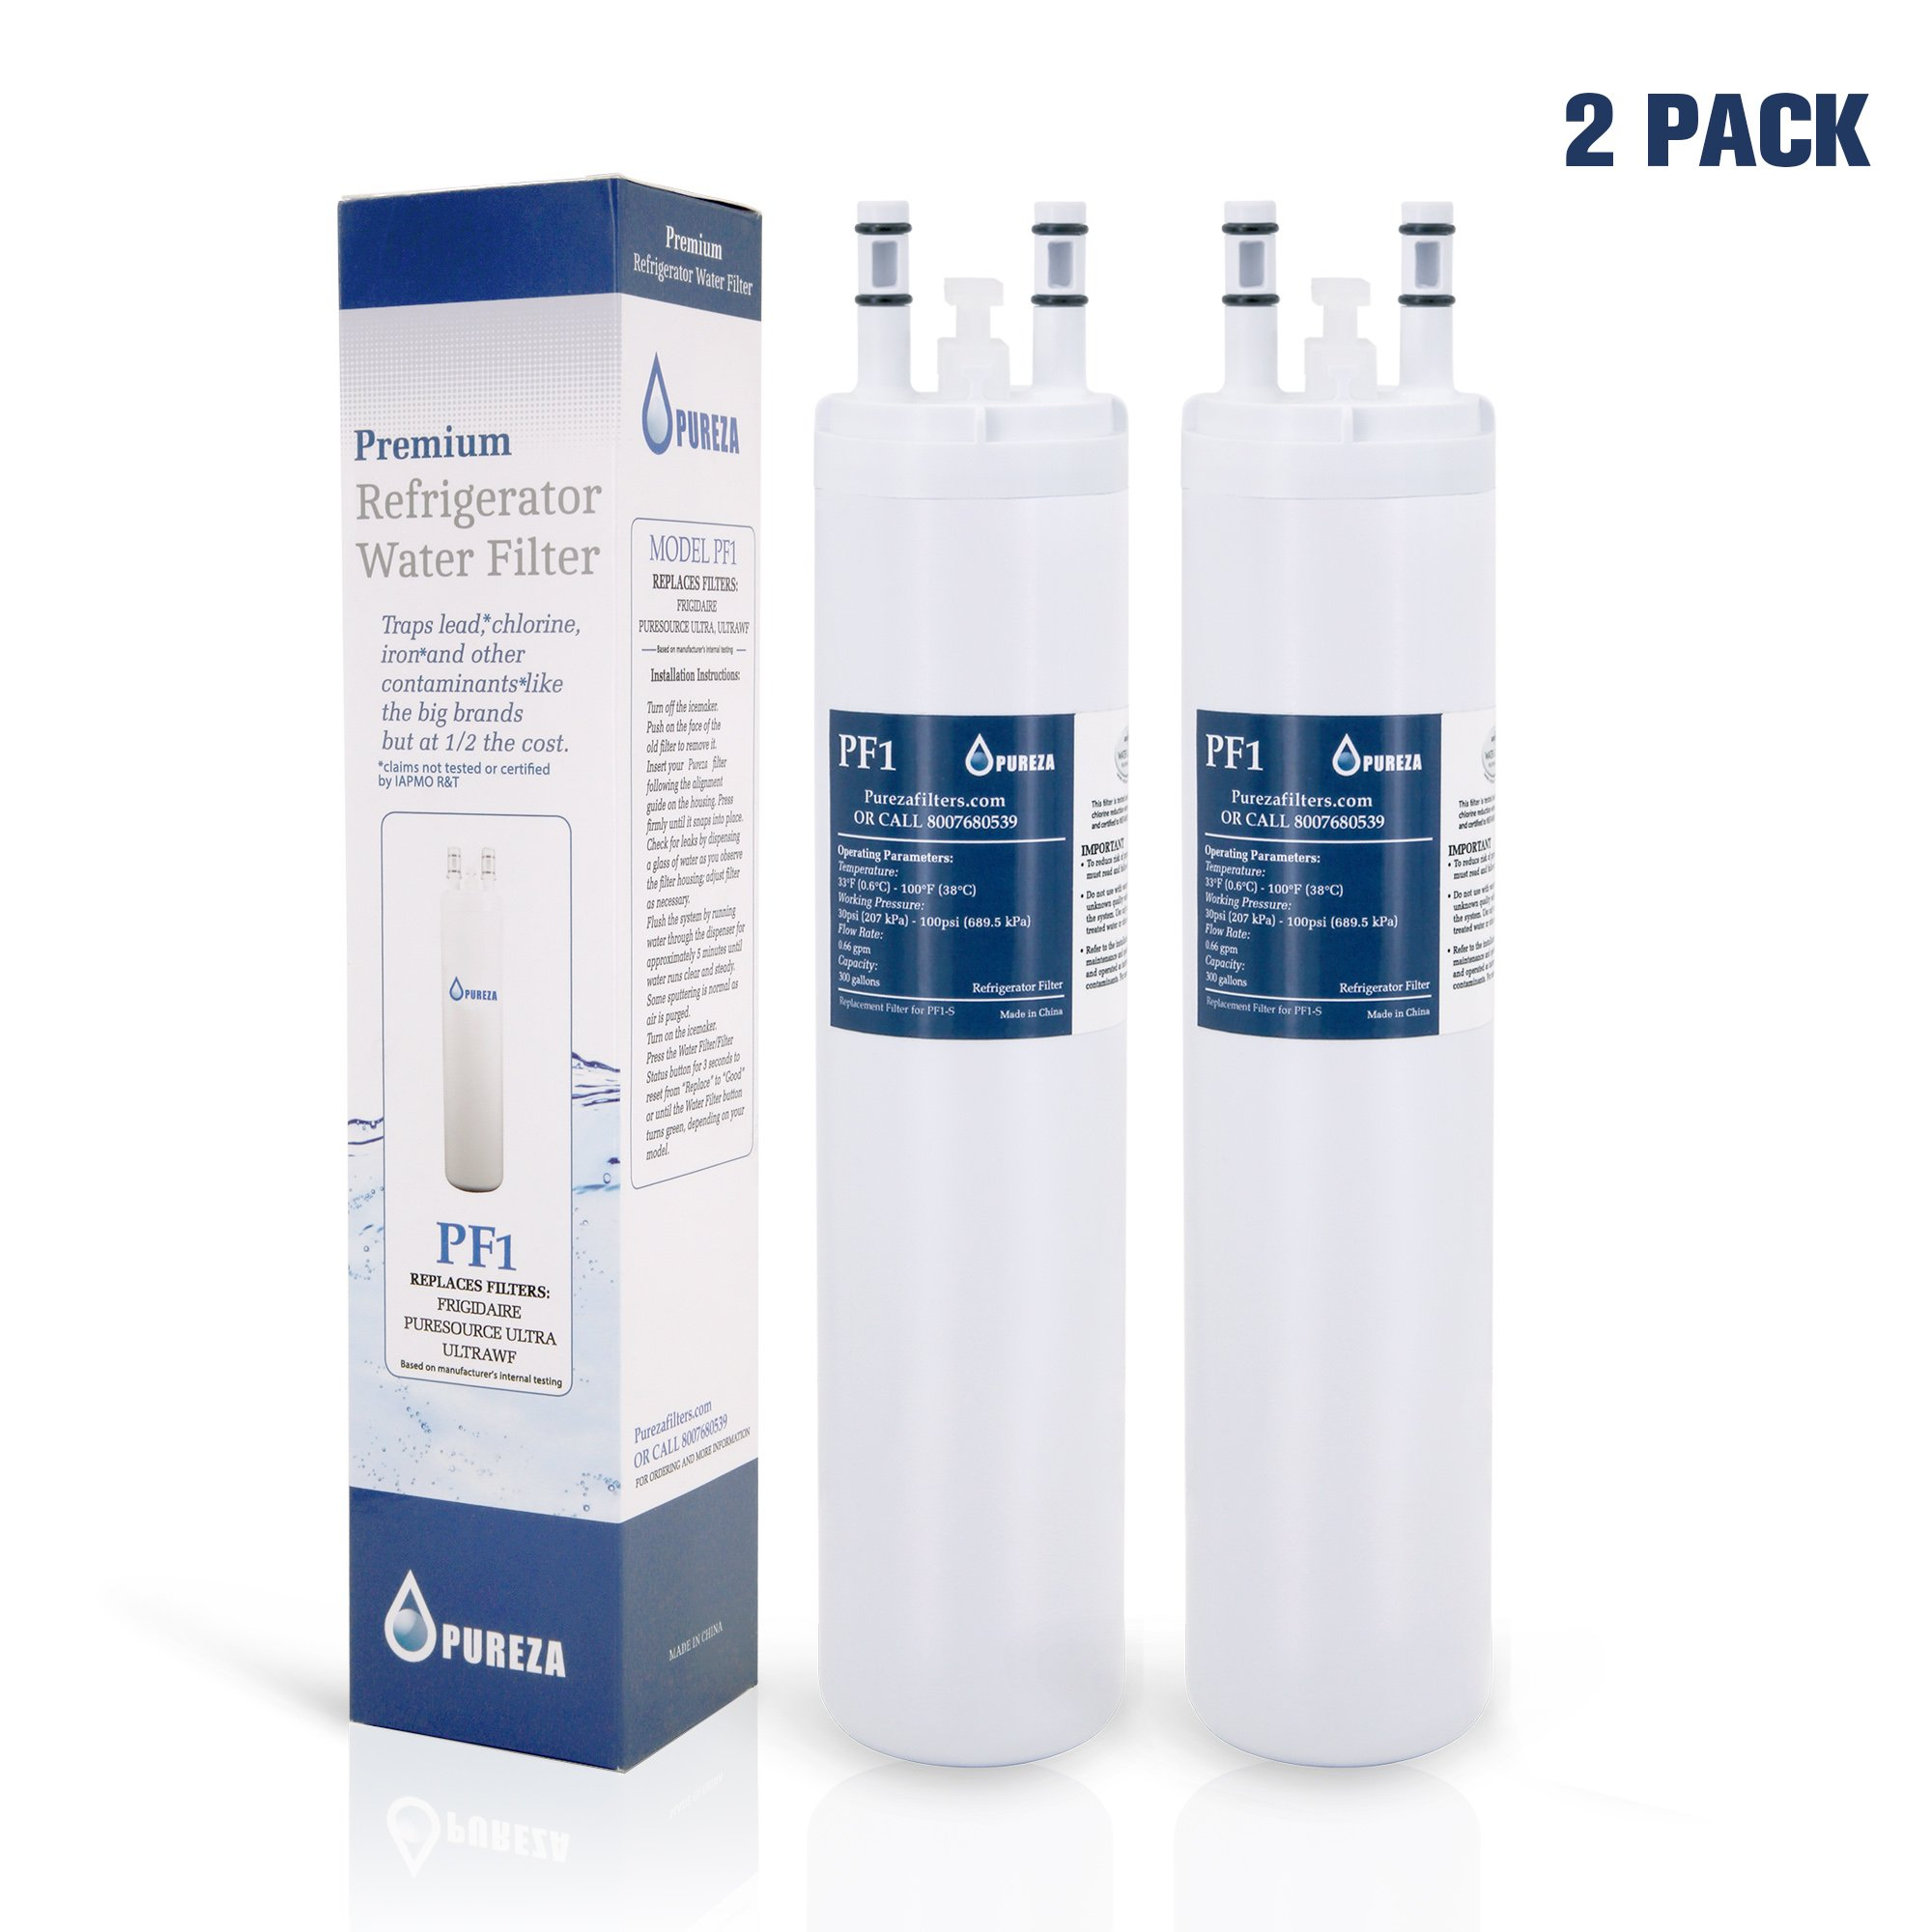 Pureza ULTRAWF Frigidaire Water Filter, PureSource Ultra, Frigidaire Compatible Cartridge For Frigidaire Refrigerators & Ice Makers-Compatible with Crystal ULTRAWF, Kenmore 46-9999, 2 Packs